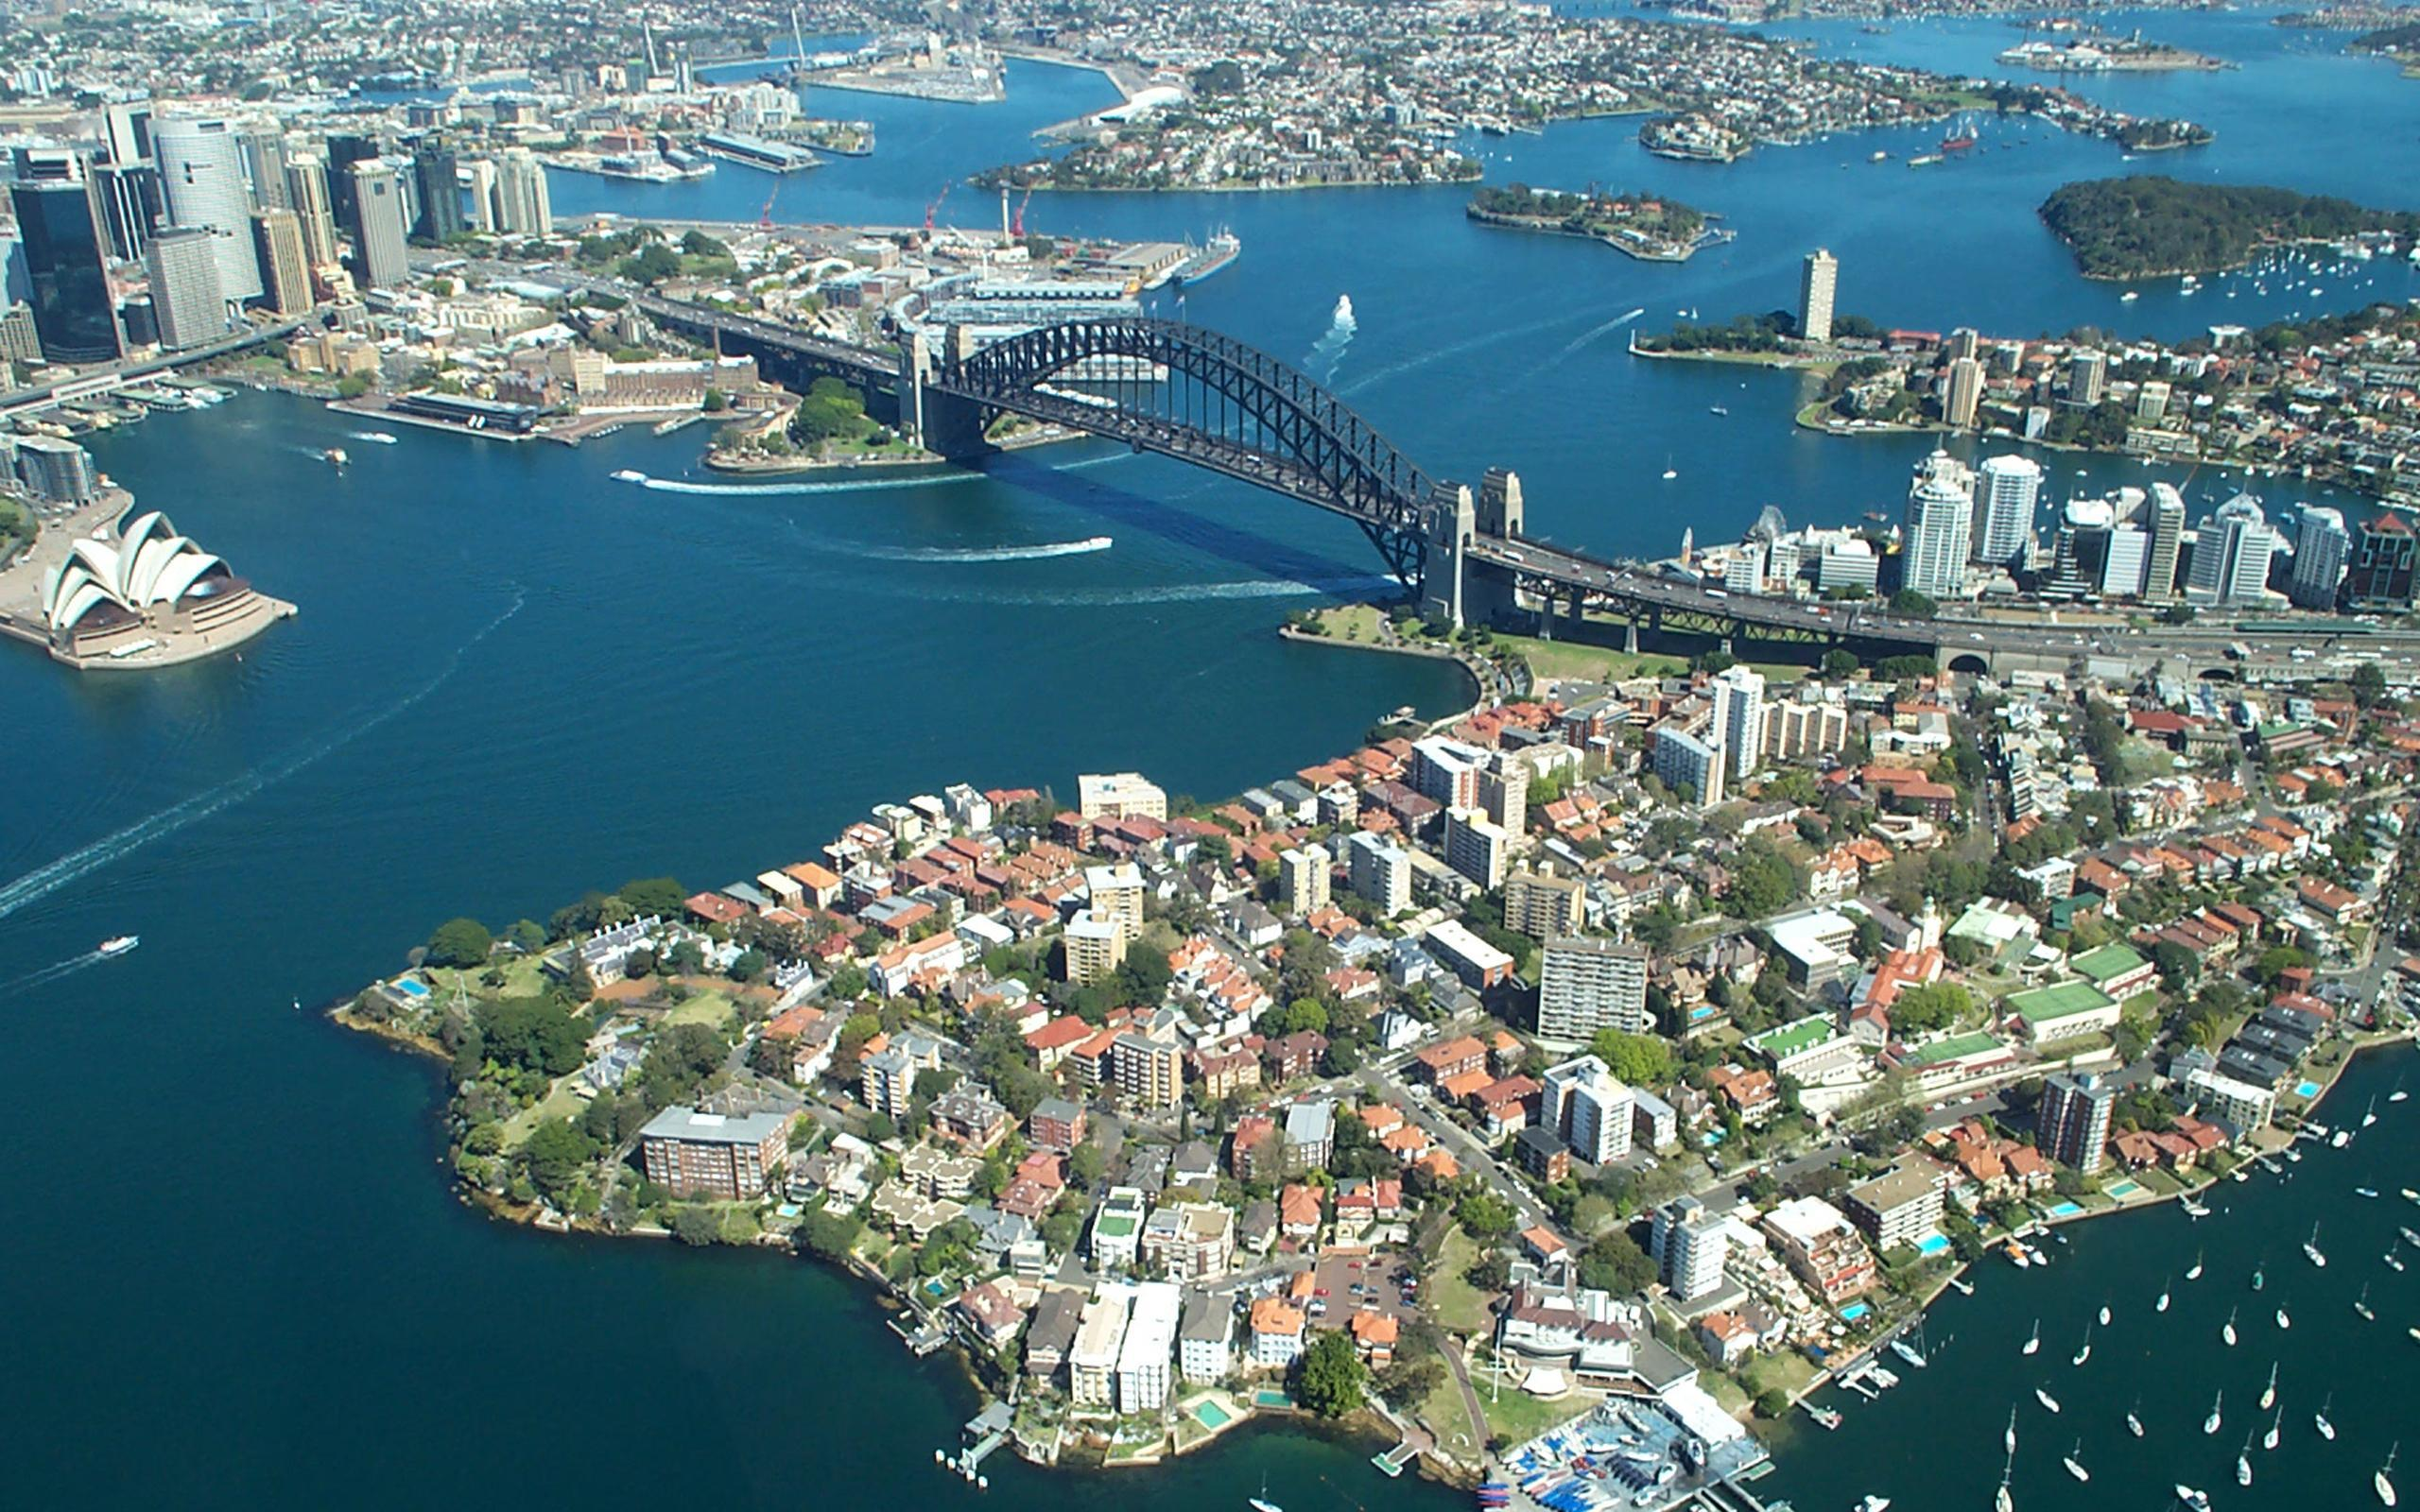 Sydney Harbour Bridge From The Air